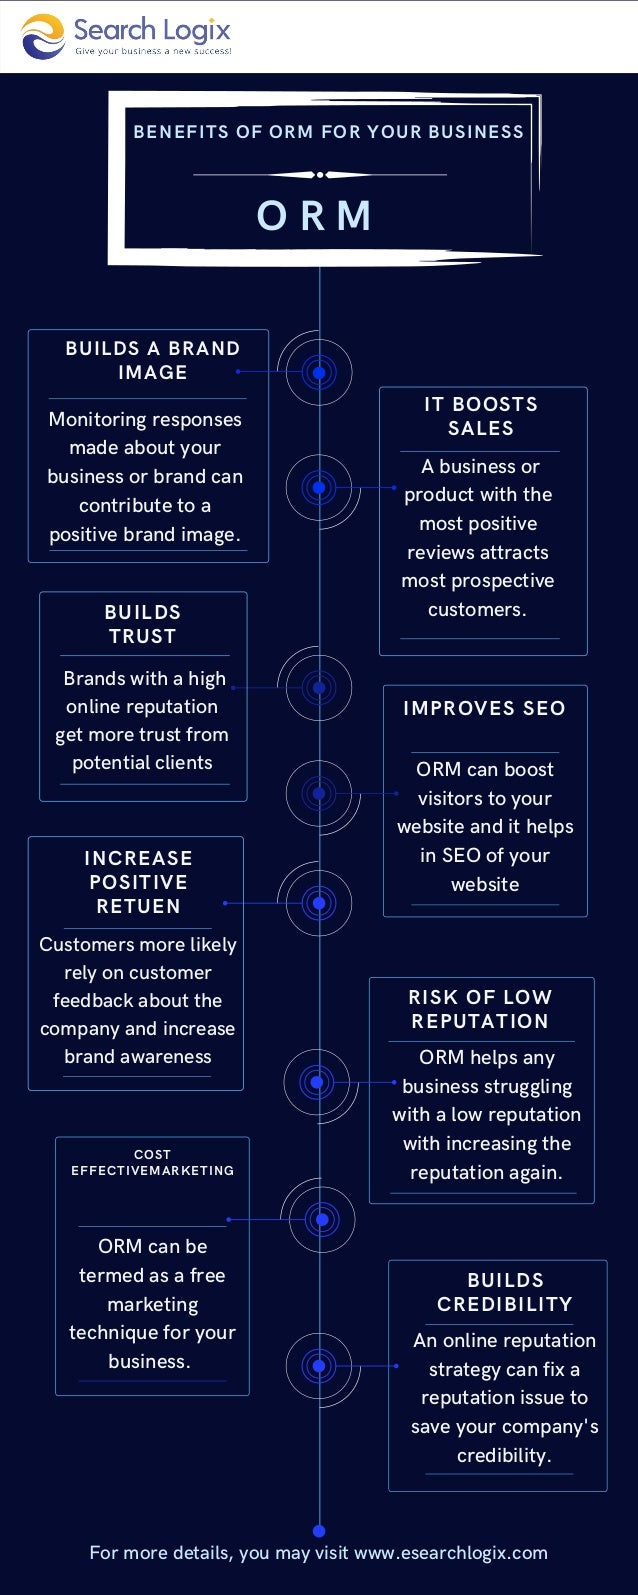 O R M A business or product with the most positive reviews attracts most prospective customers. IT BOOSTS SALES Monitoring...